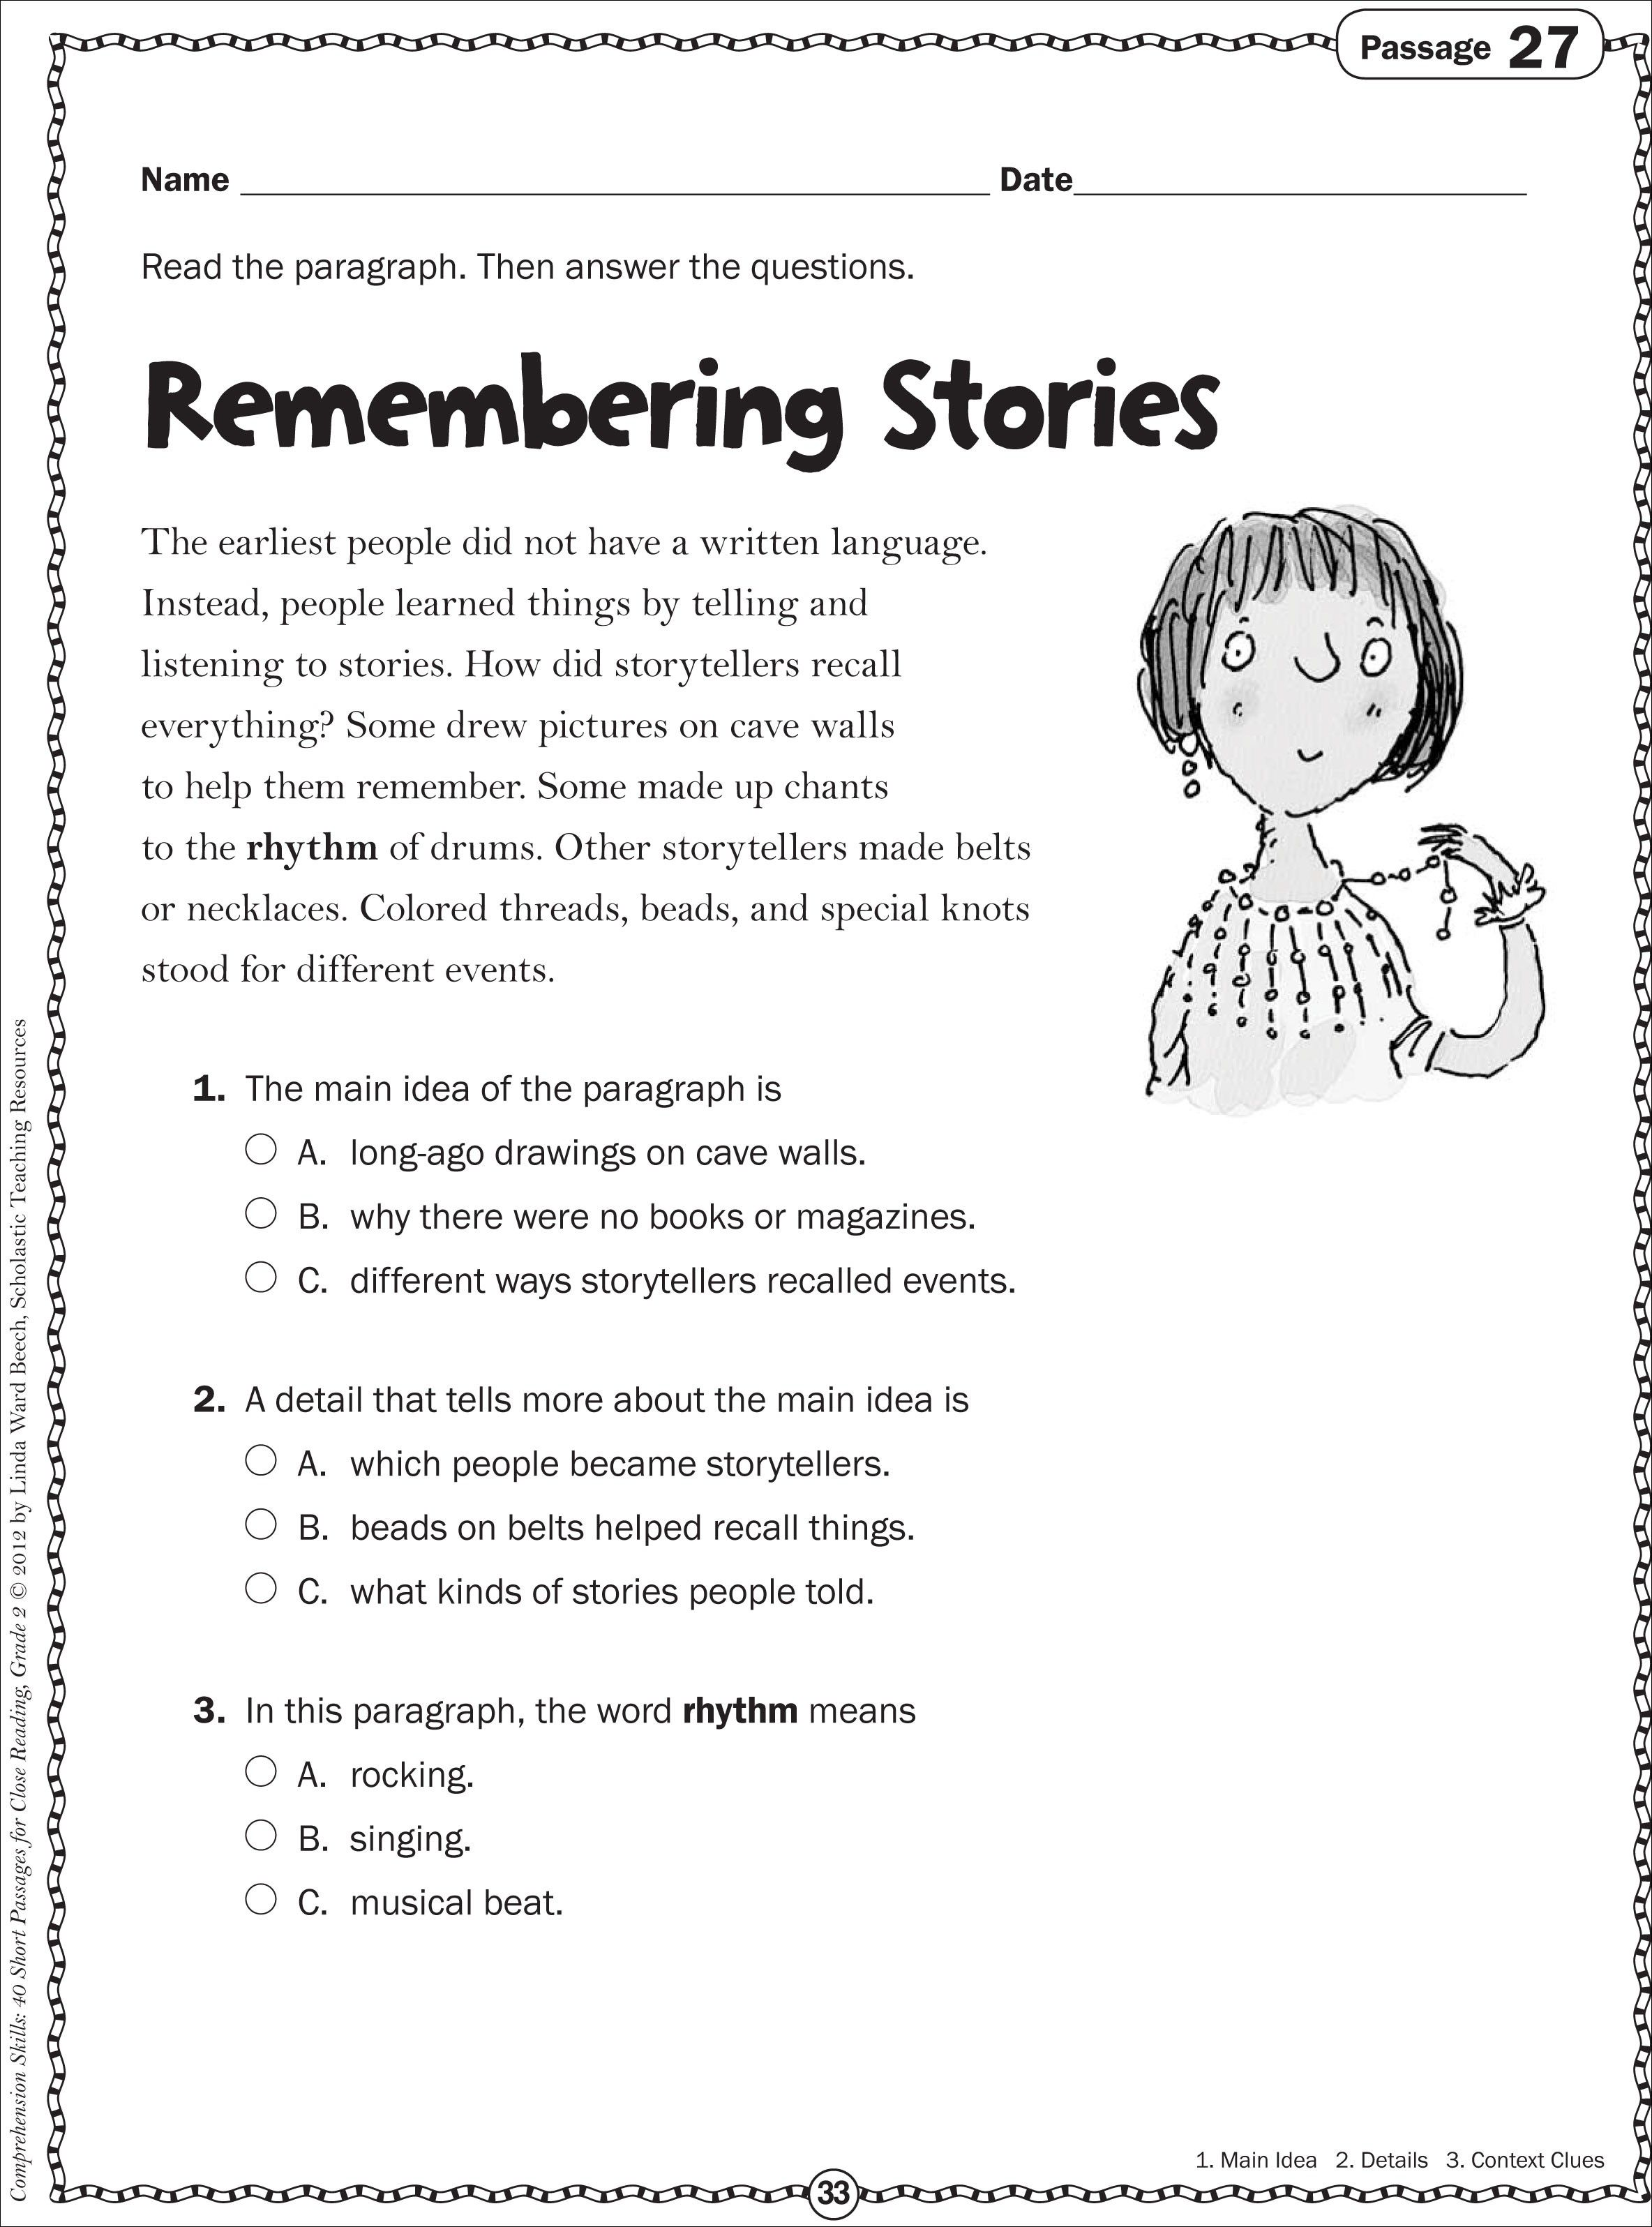 worksheet Context Clues In Paragraphs Worksheets grade 2 reading passages memarchoapraga school pinterest memarchoapraga